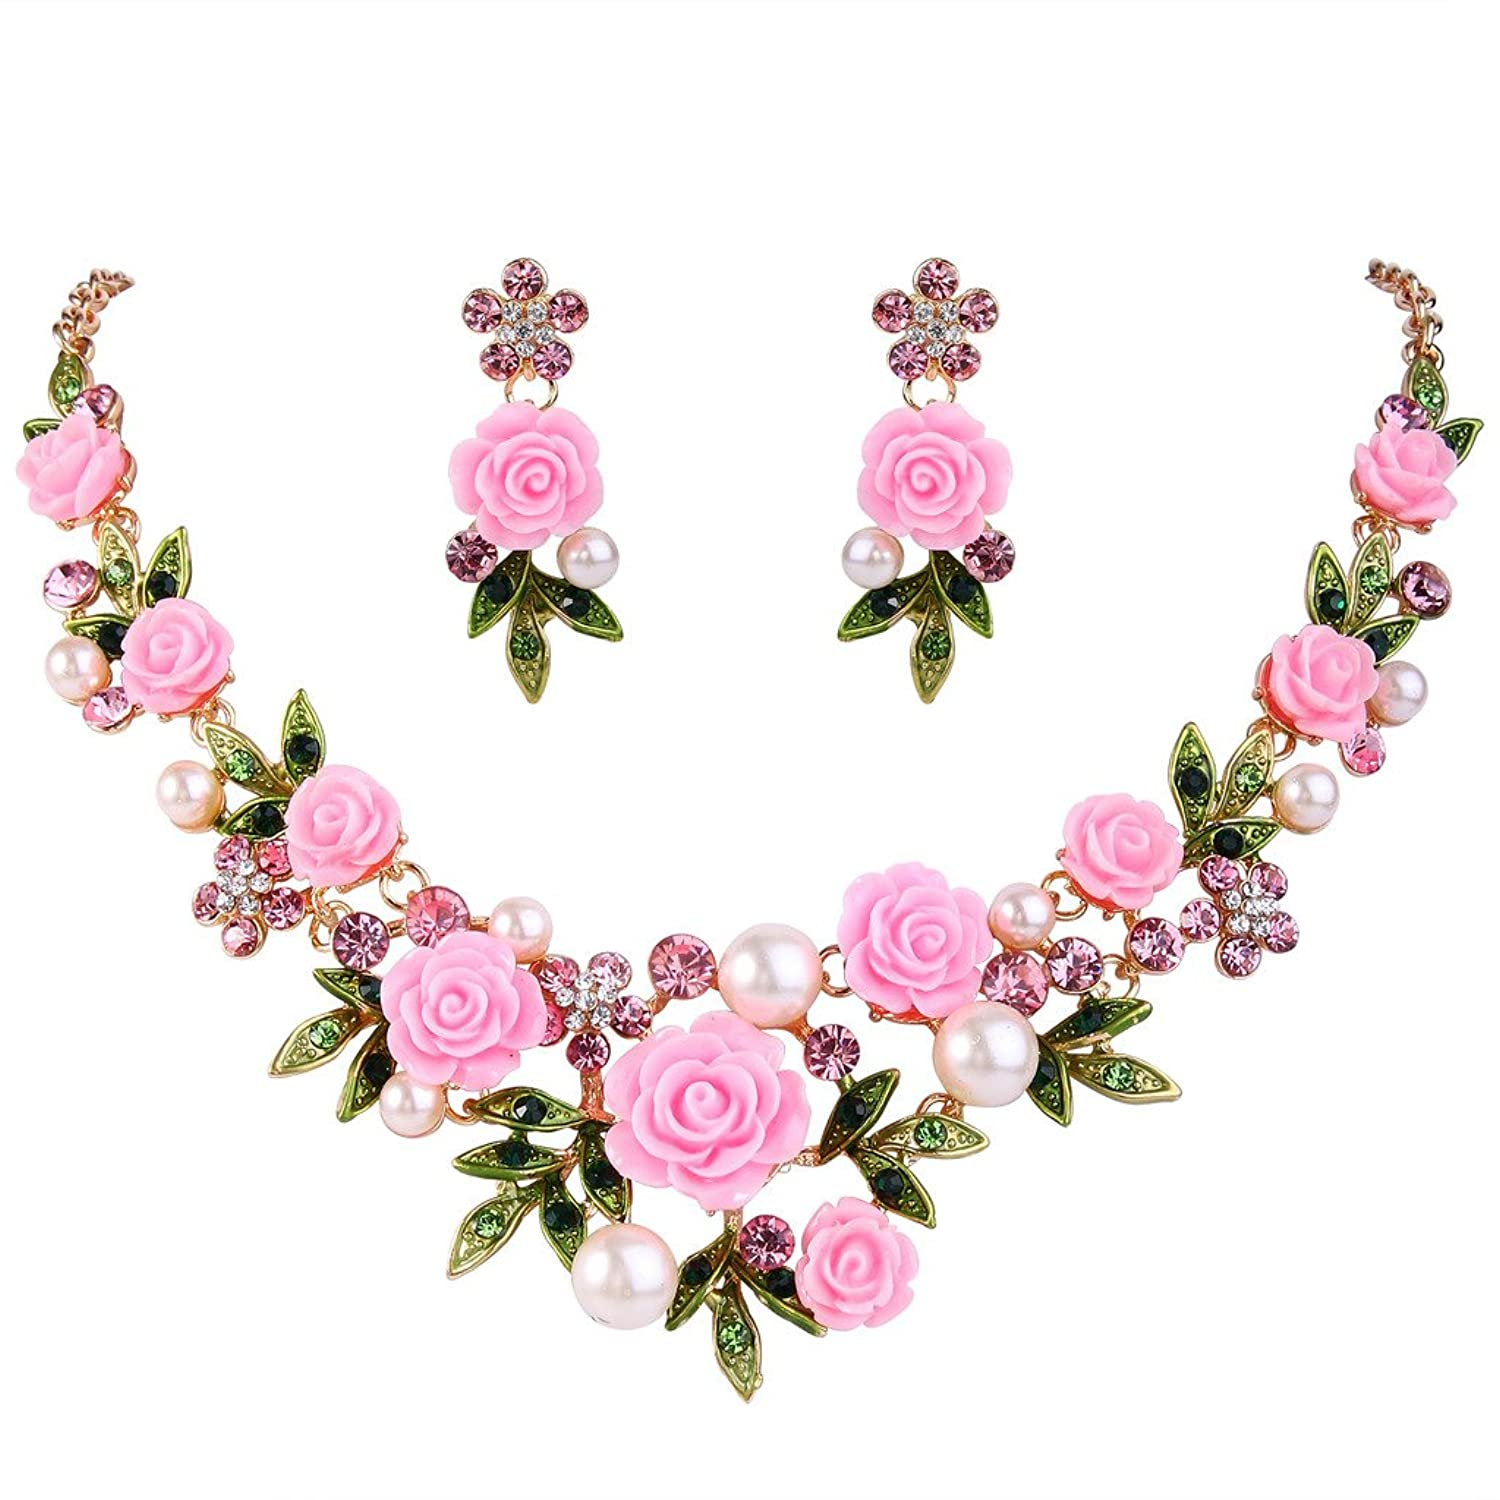 Women's Vintage Hats | Old Fashioned Hats | Retro Hats EVER FAITH Womens Austrian Crystal Simulated Pearl Rose Flower Leaf Necklace Earrings Set $22.99 AT vintagedancer.com